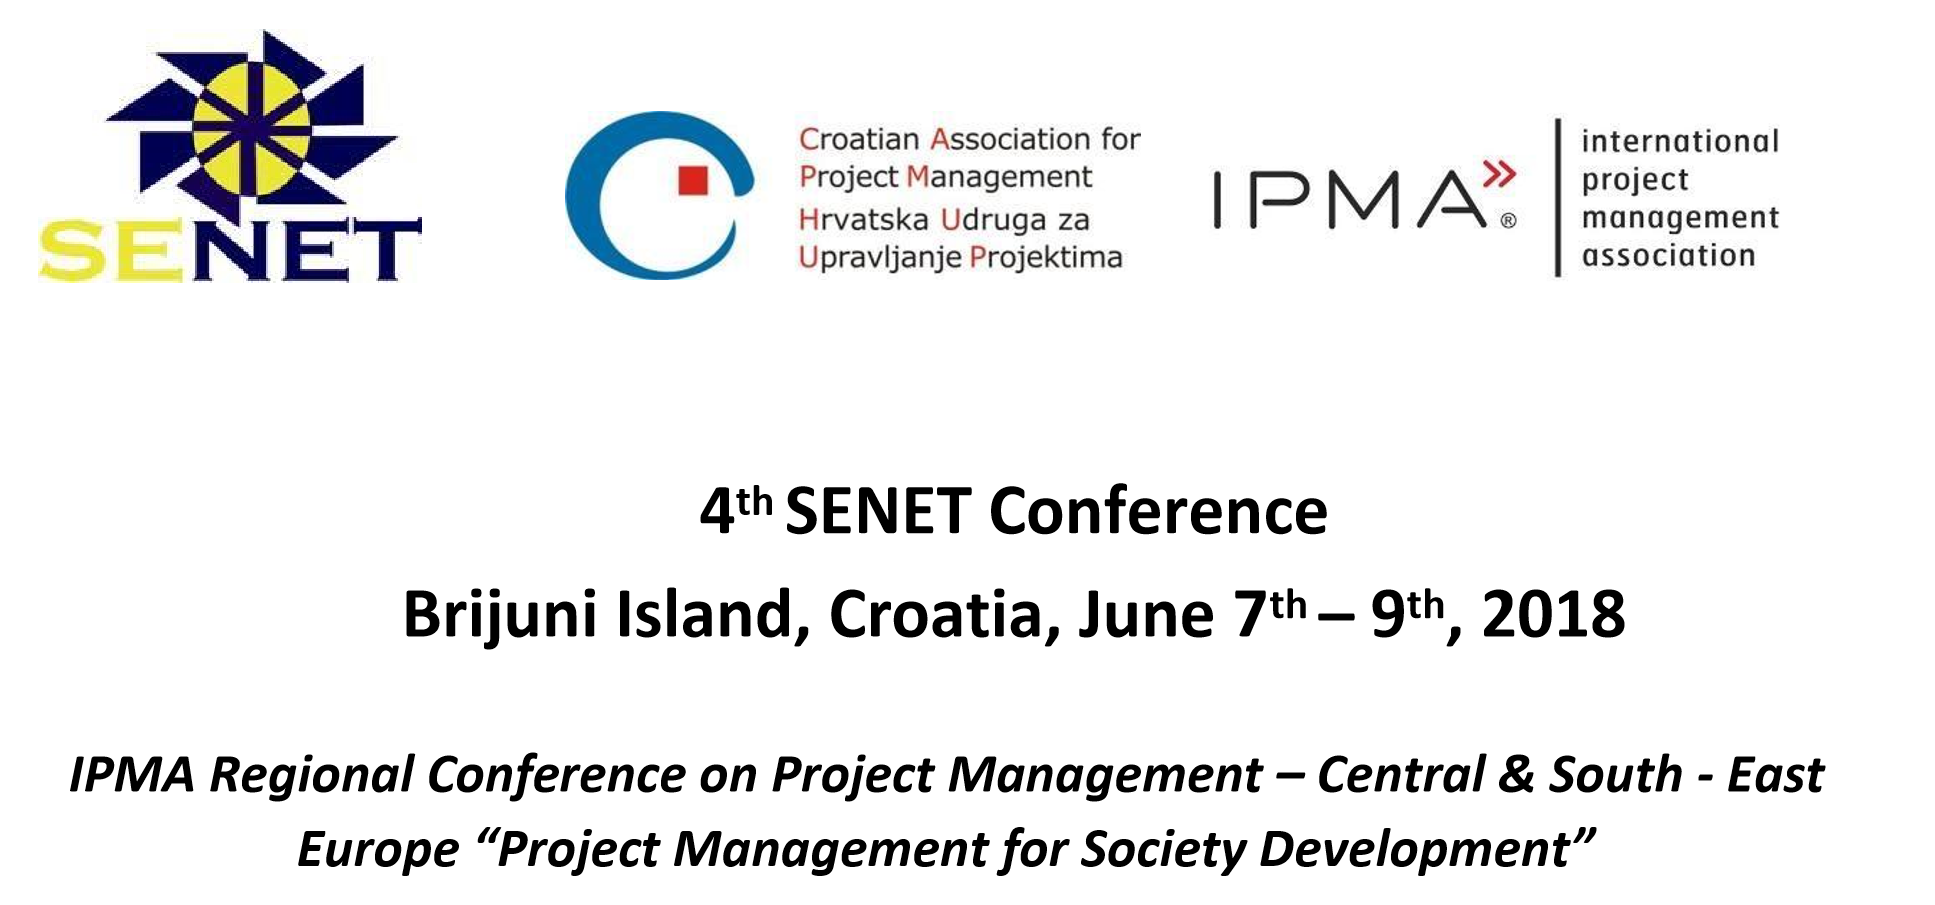 4th SENET Conference